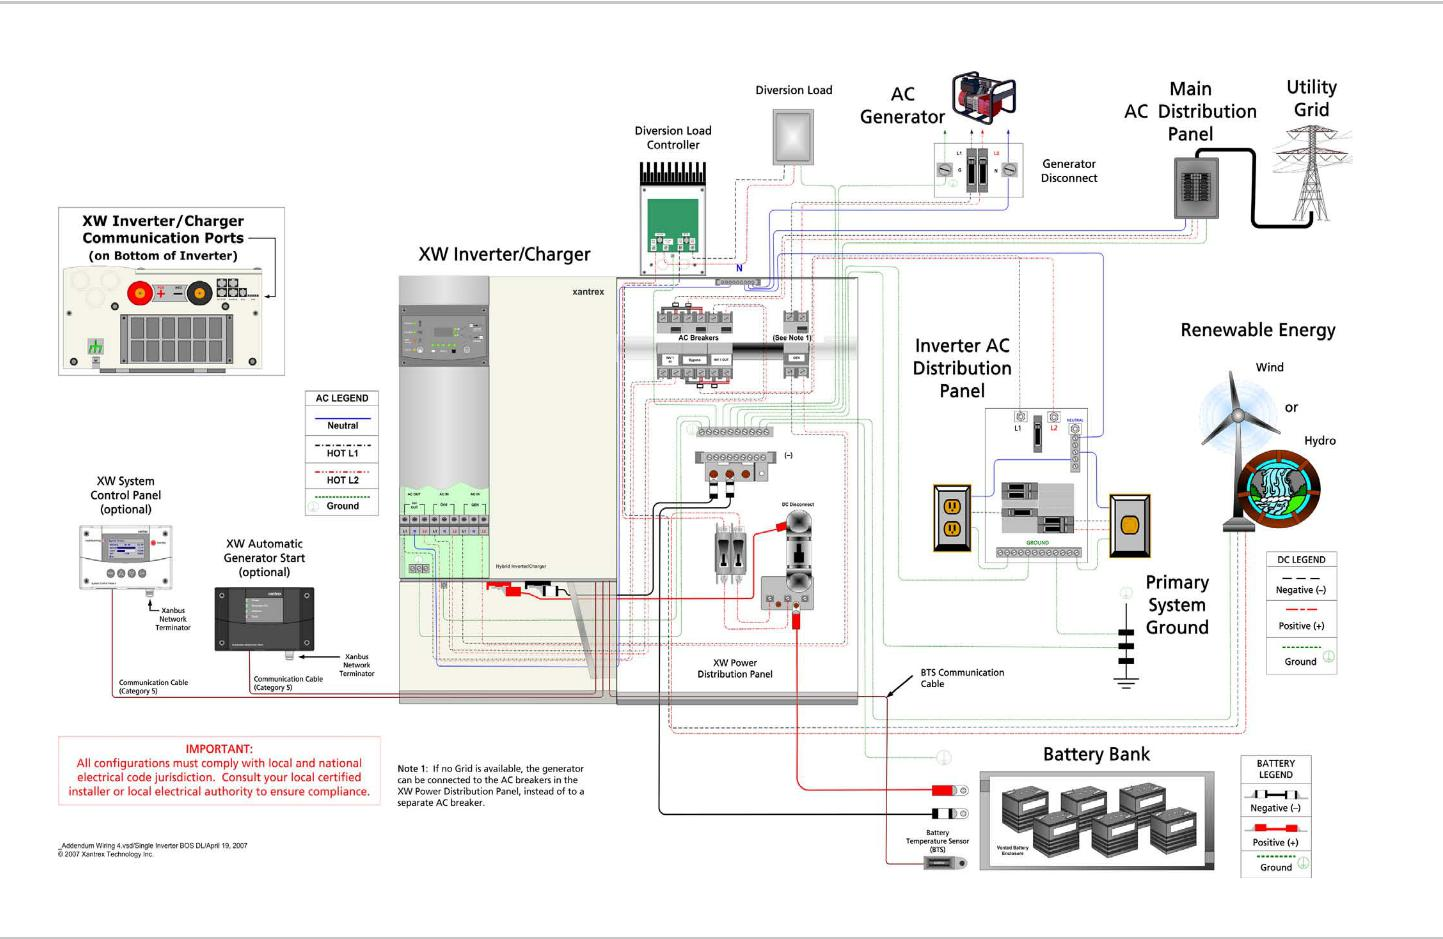 WY_7876] Inverter Charger Wiring Xantrex Get Free Image About Wiring  Diagram Wiring Diagram | Xantrex Ac Wiring Diagram |  | Trofu Dome Mohammedshrine Librar Wiring 101